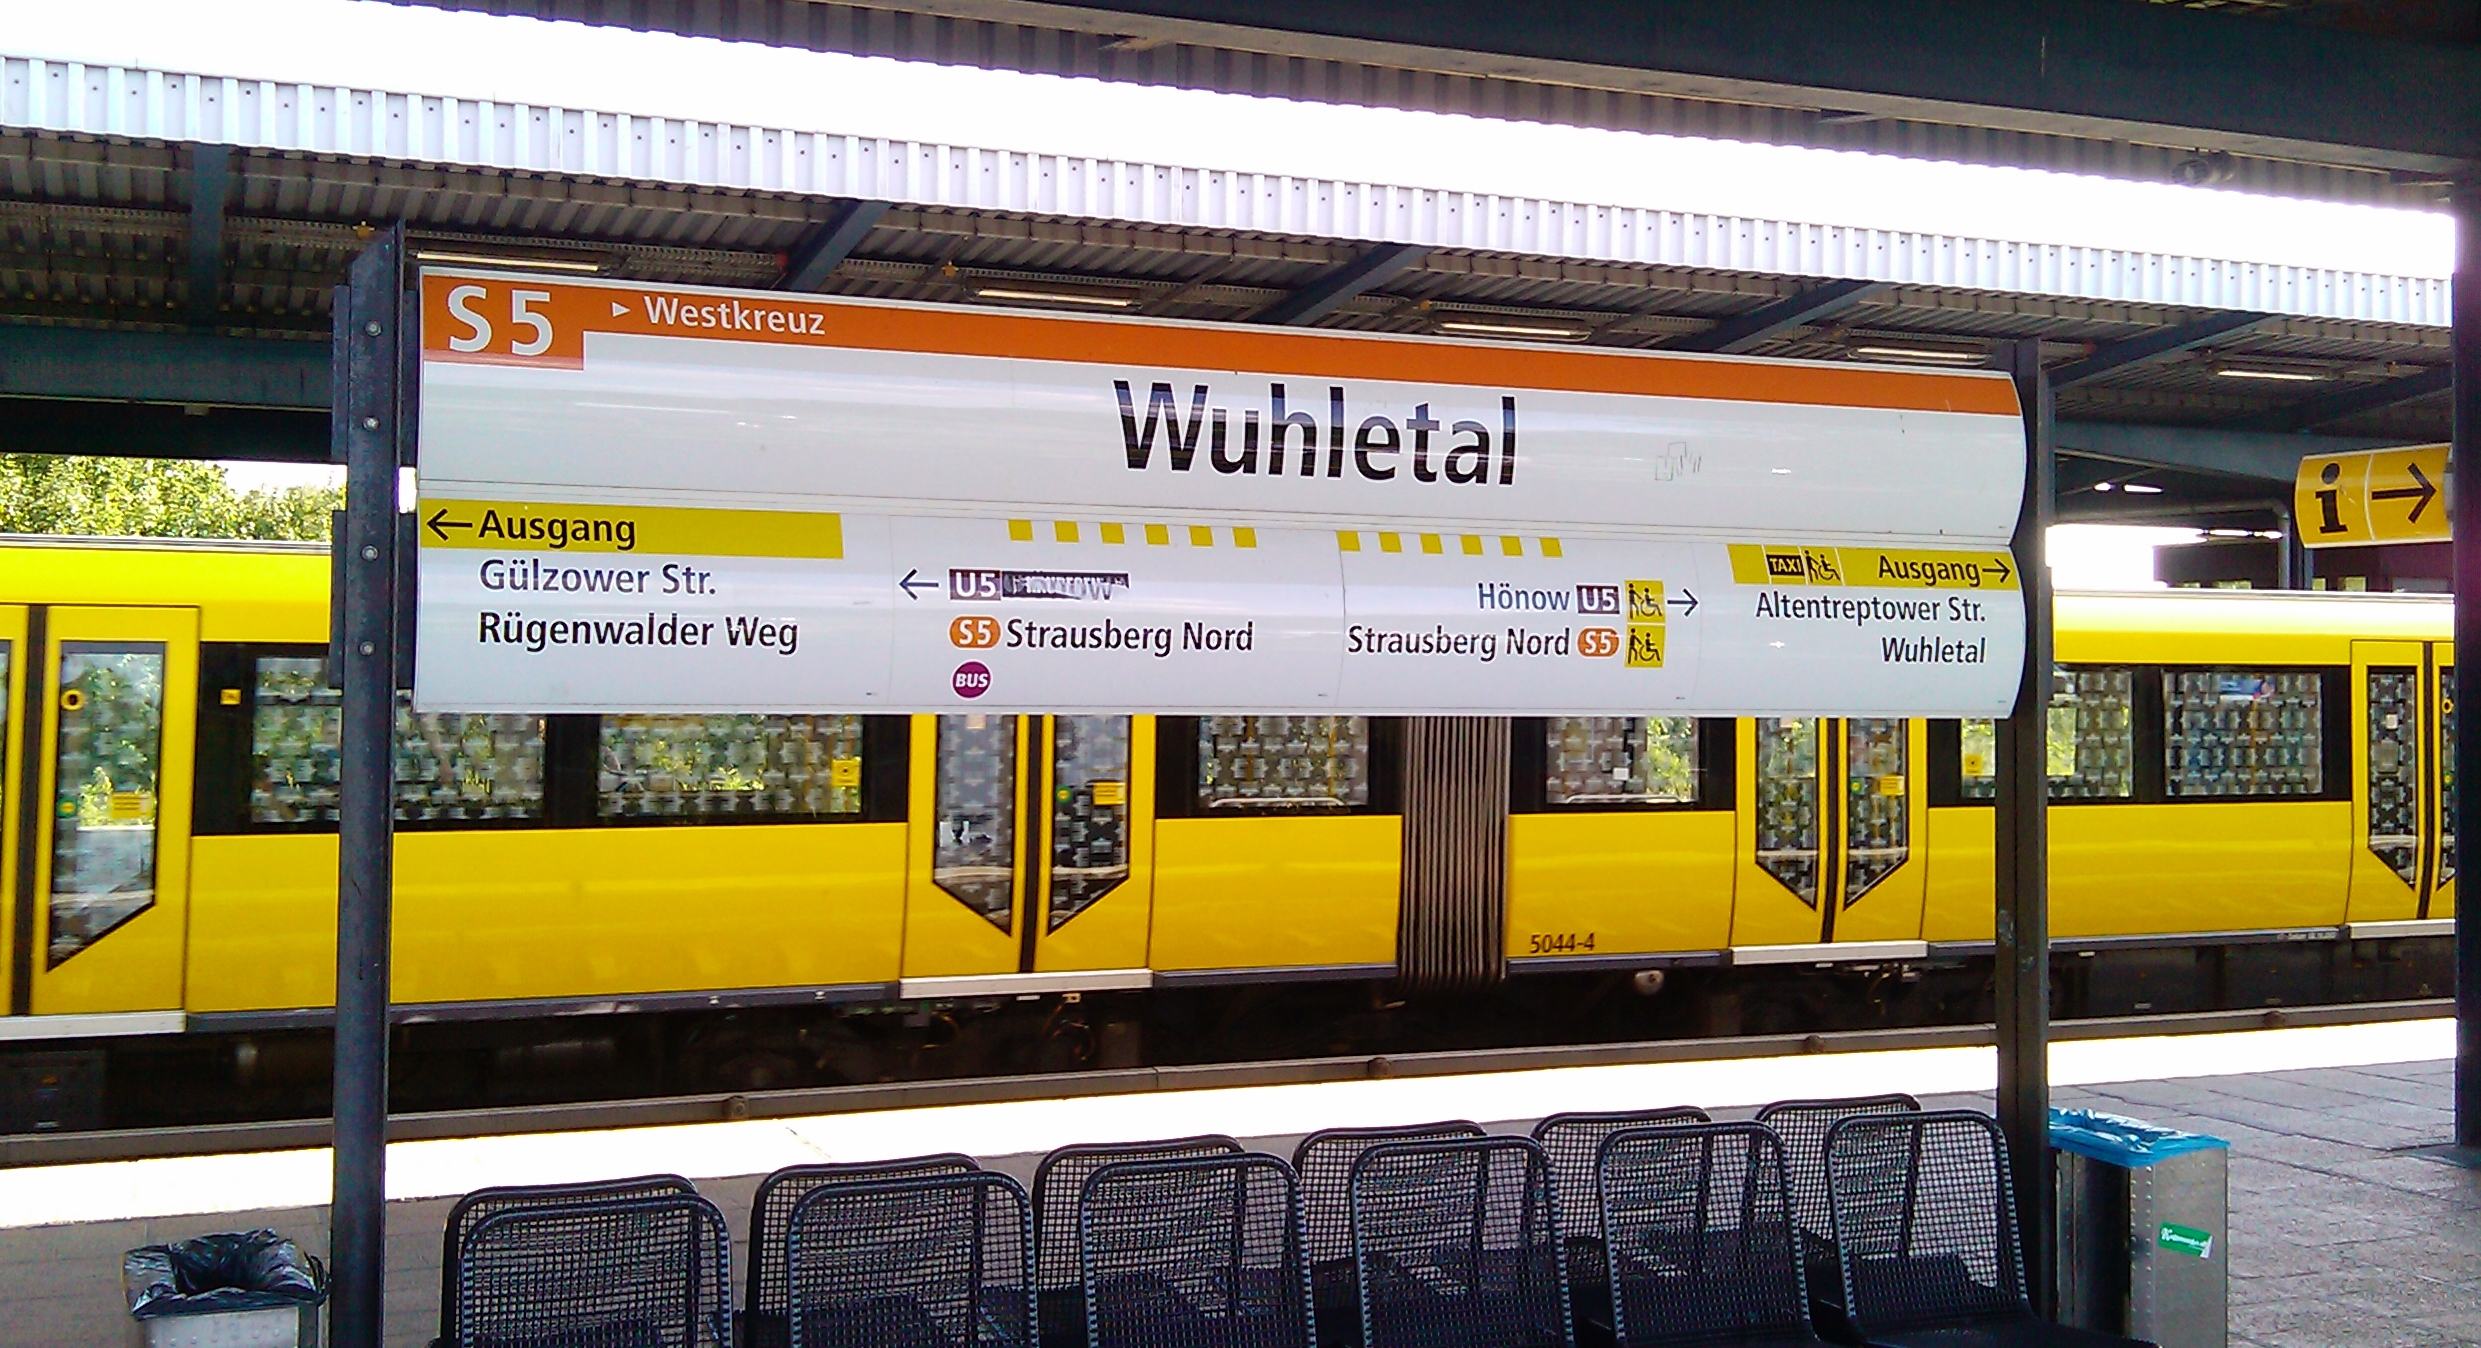 Bahnhof_Berlin-Wuhletal_Station_Sign_of_S-Bahn_in_BVG_Corporate_Design